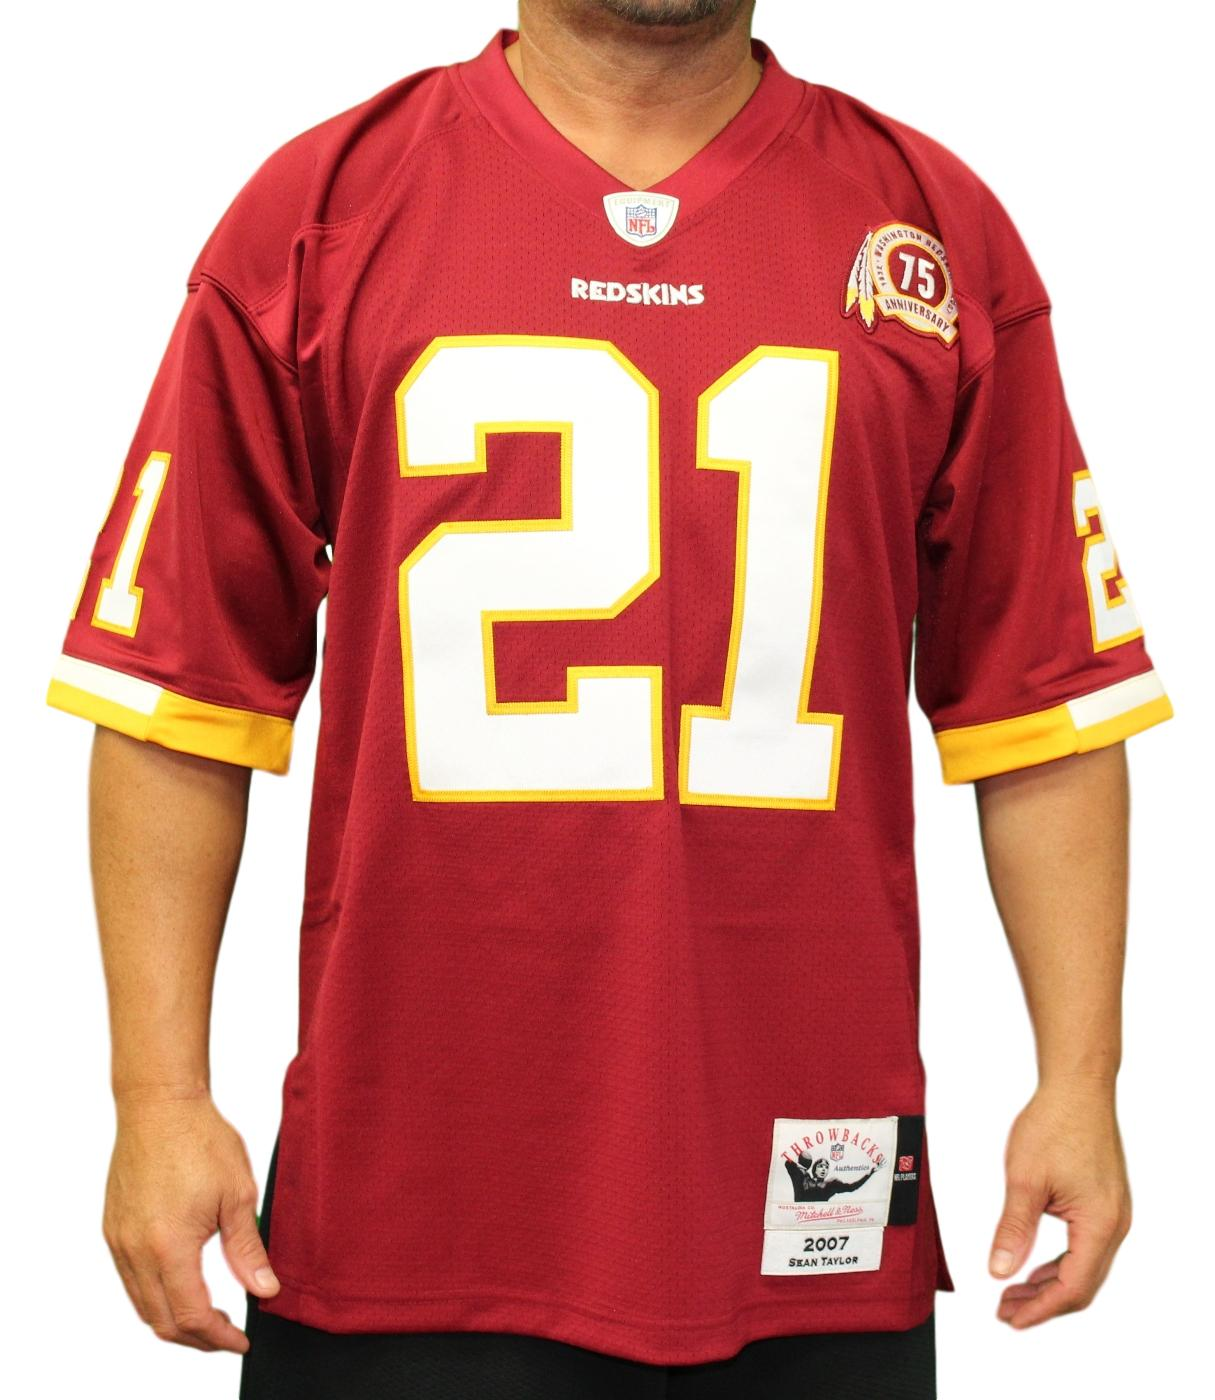 brand new f4fd3 e52bd Details about Sean Taylor Washington Redskins Mitchell & Ness Authentic  2007 Red NFL Jersey